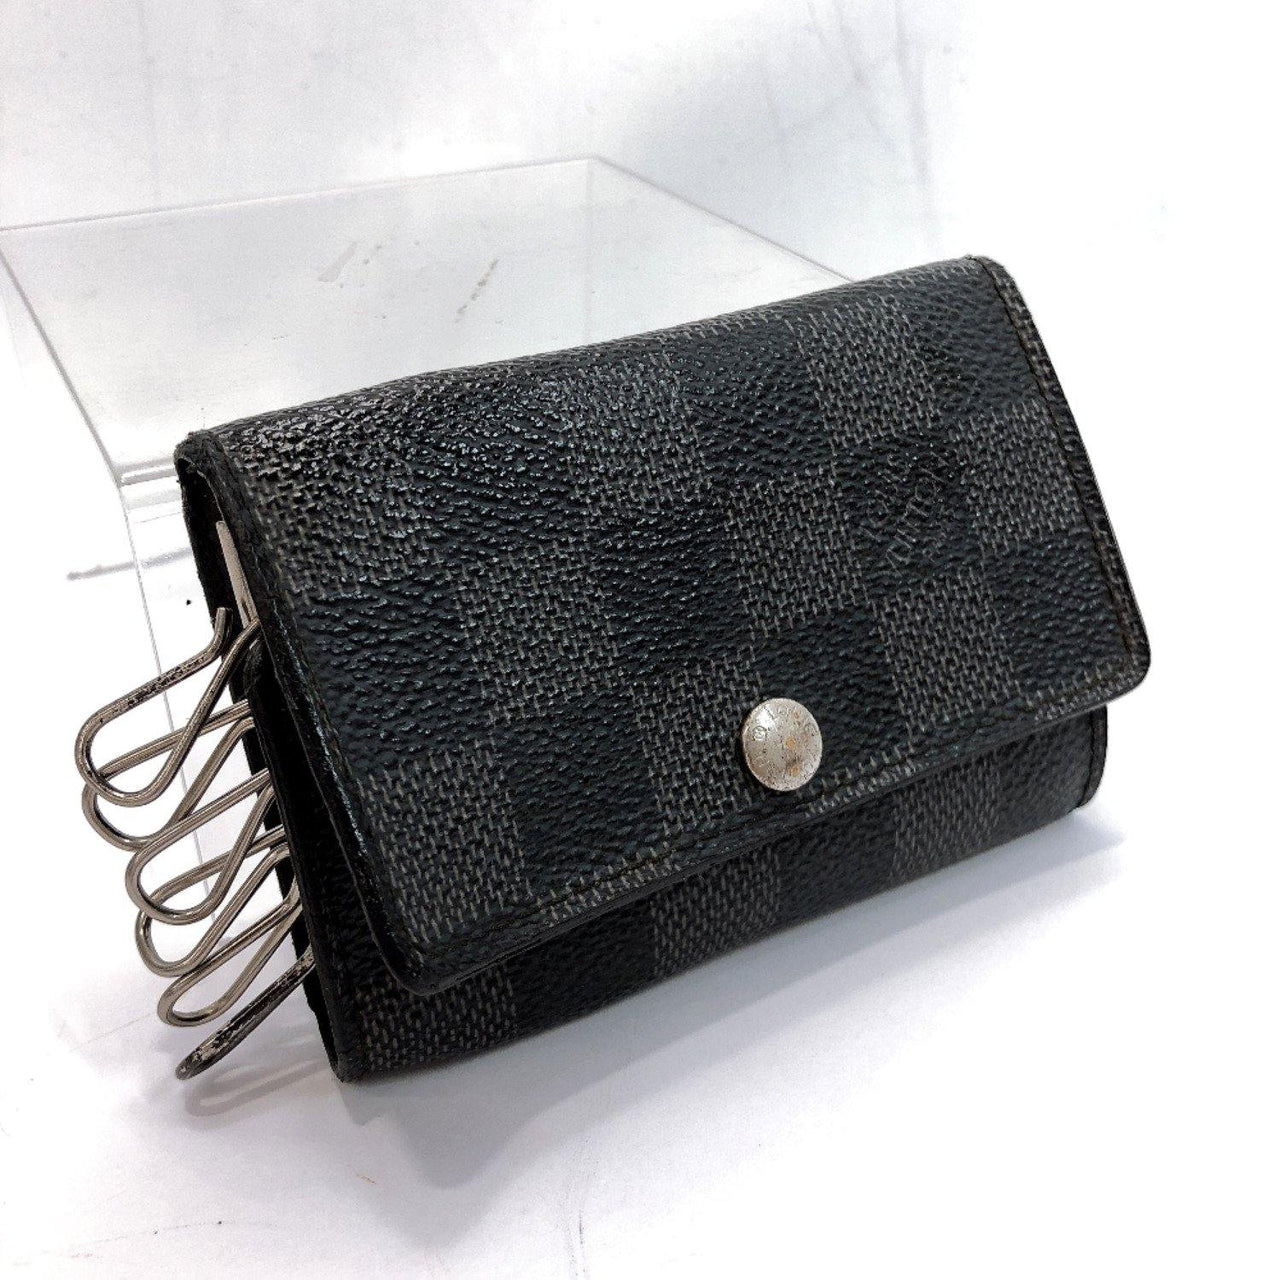 LOUIS VUITTON key holder M62662 Multicles6 Damier Grafitto Canvas black mens Used - JP-BRANDS.com